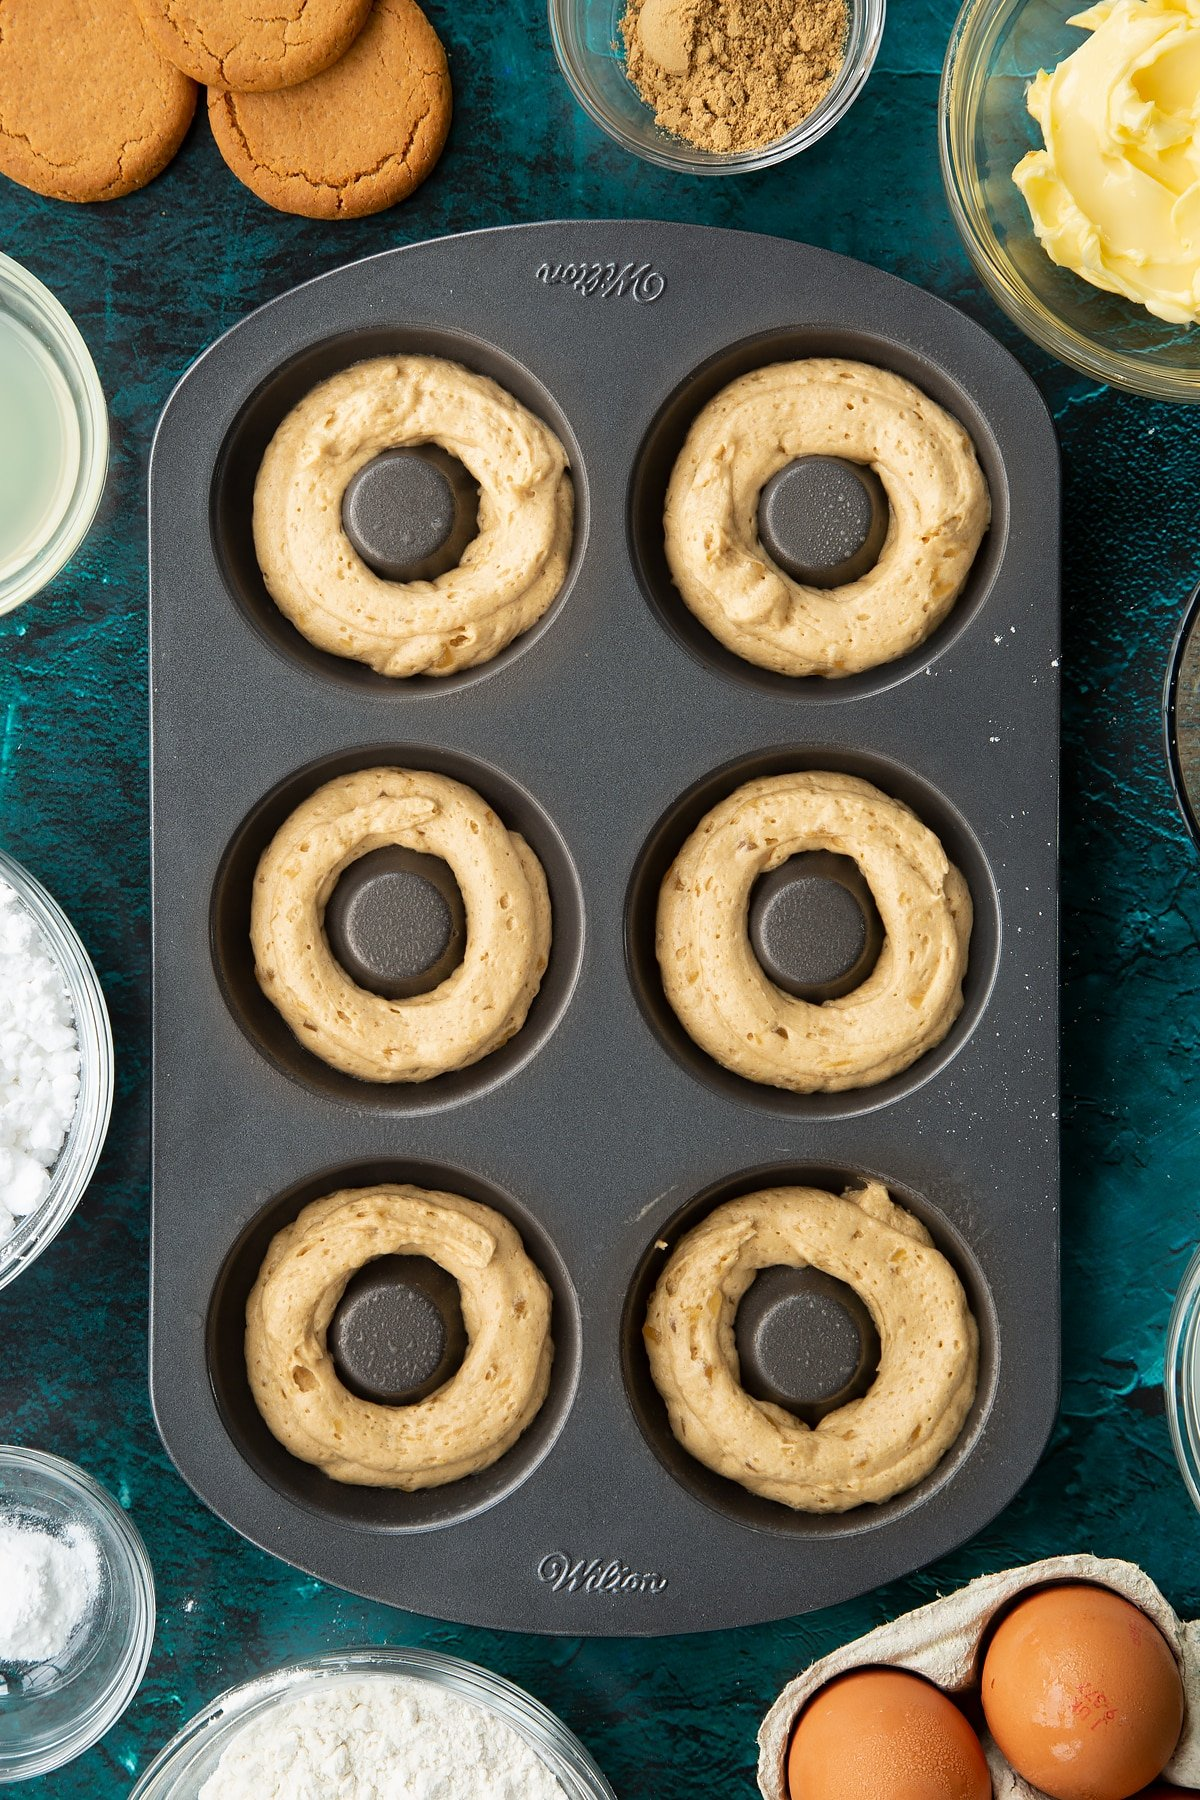 A metal donut pan with gingerbread donut batter piped into it.